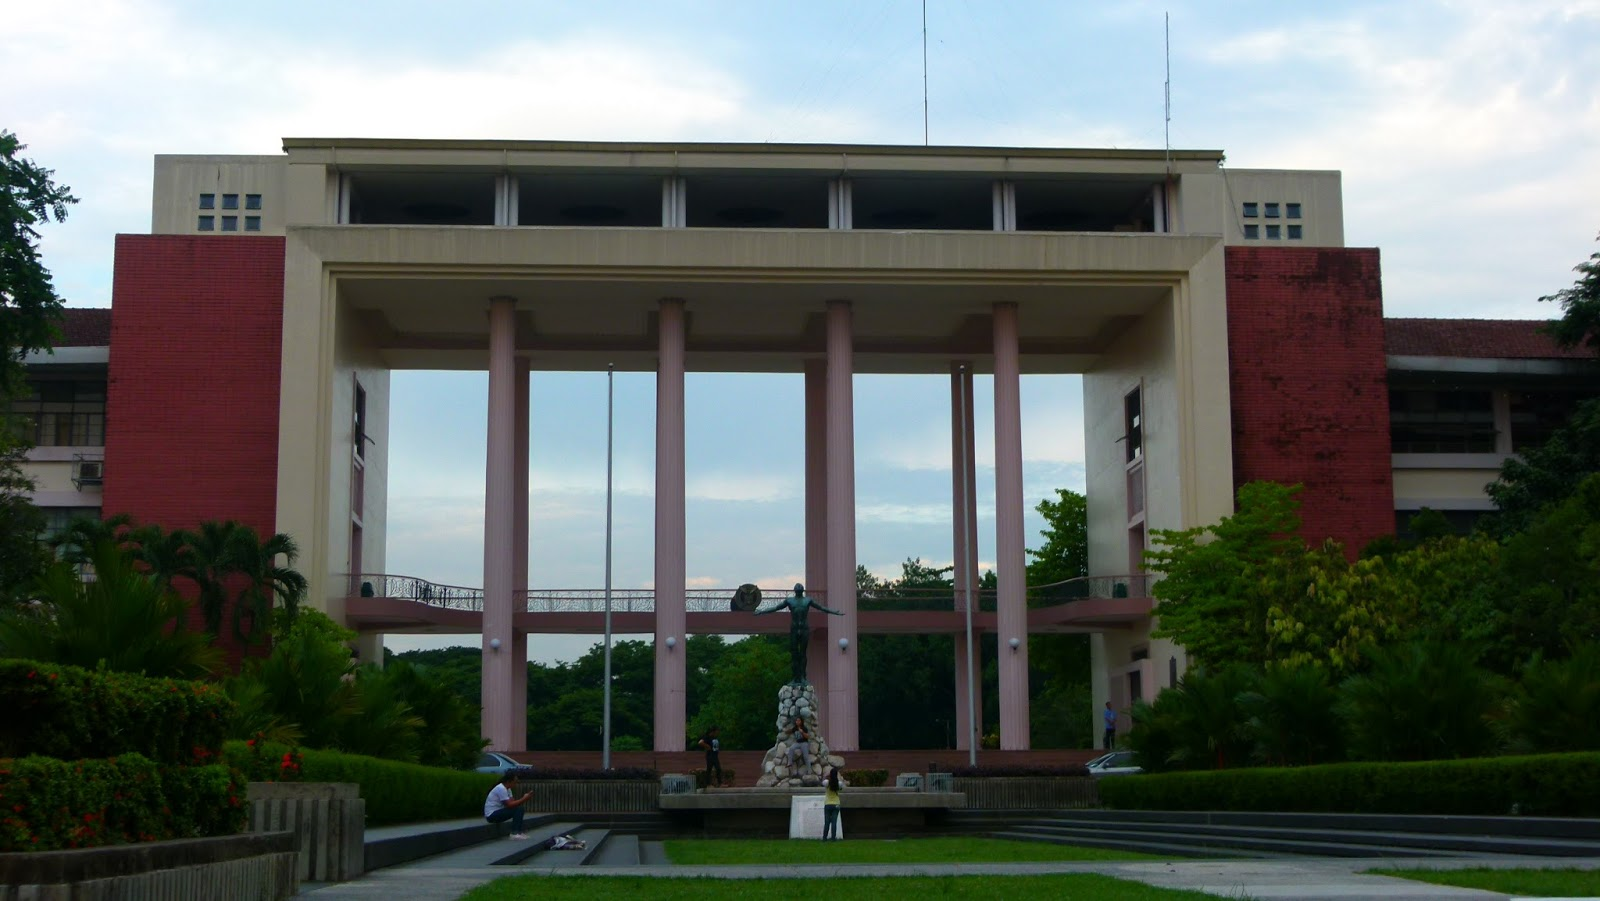 """the quezon hall of up diliman the pride of university There are two ongoing exhibits at the university of the philippines diliman that emphasize how its past and also its future are so intertwined with that of quezon city one exhibit, """"shared heritage,"""" is curated by architect gerard lico and consists of blown-up photographs of quezon city and up."""